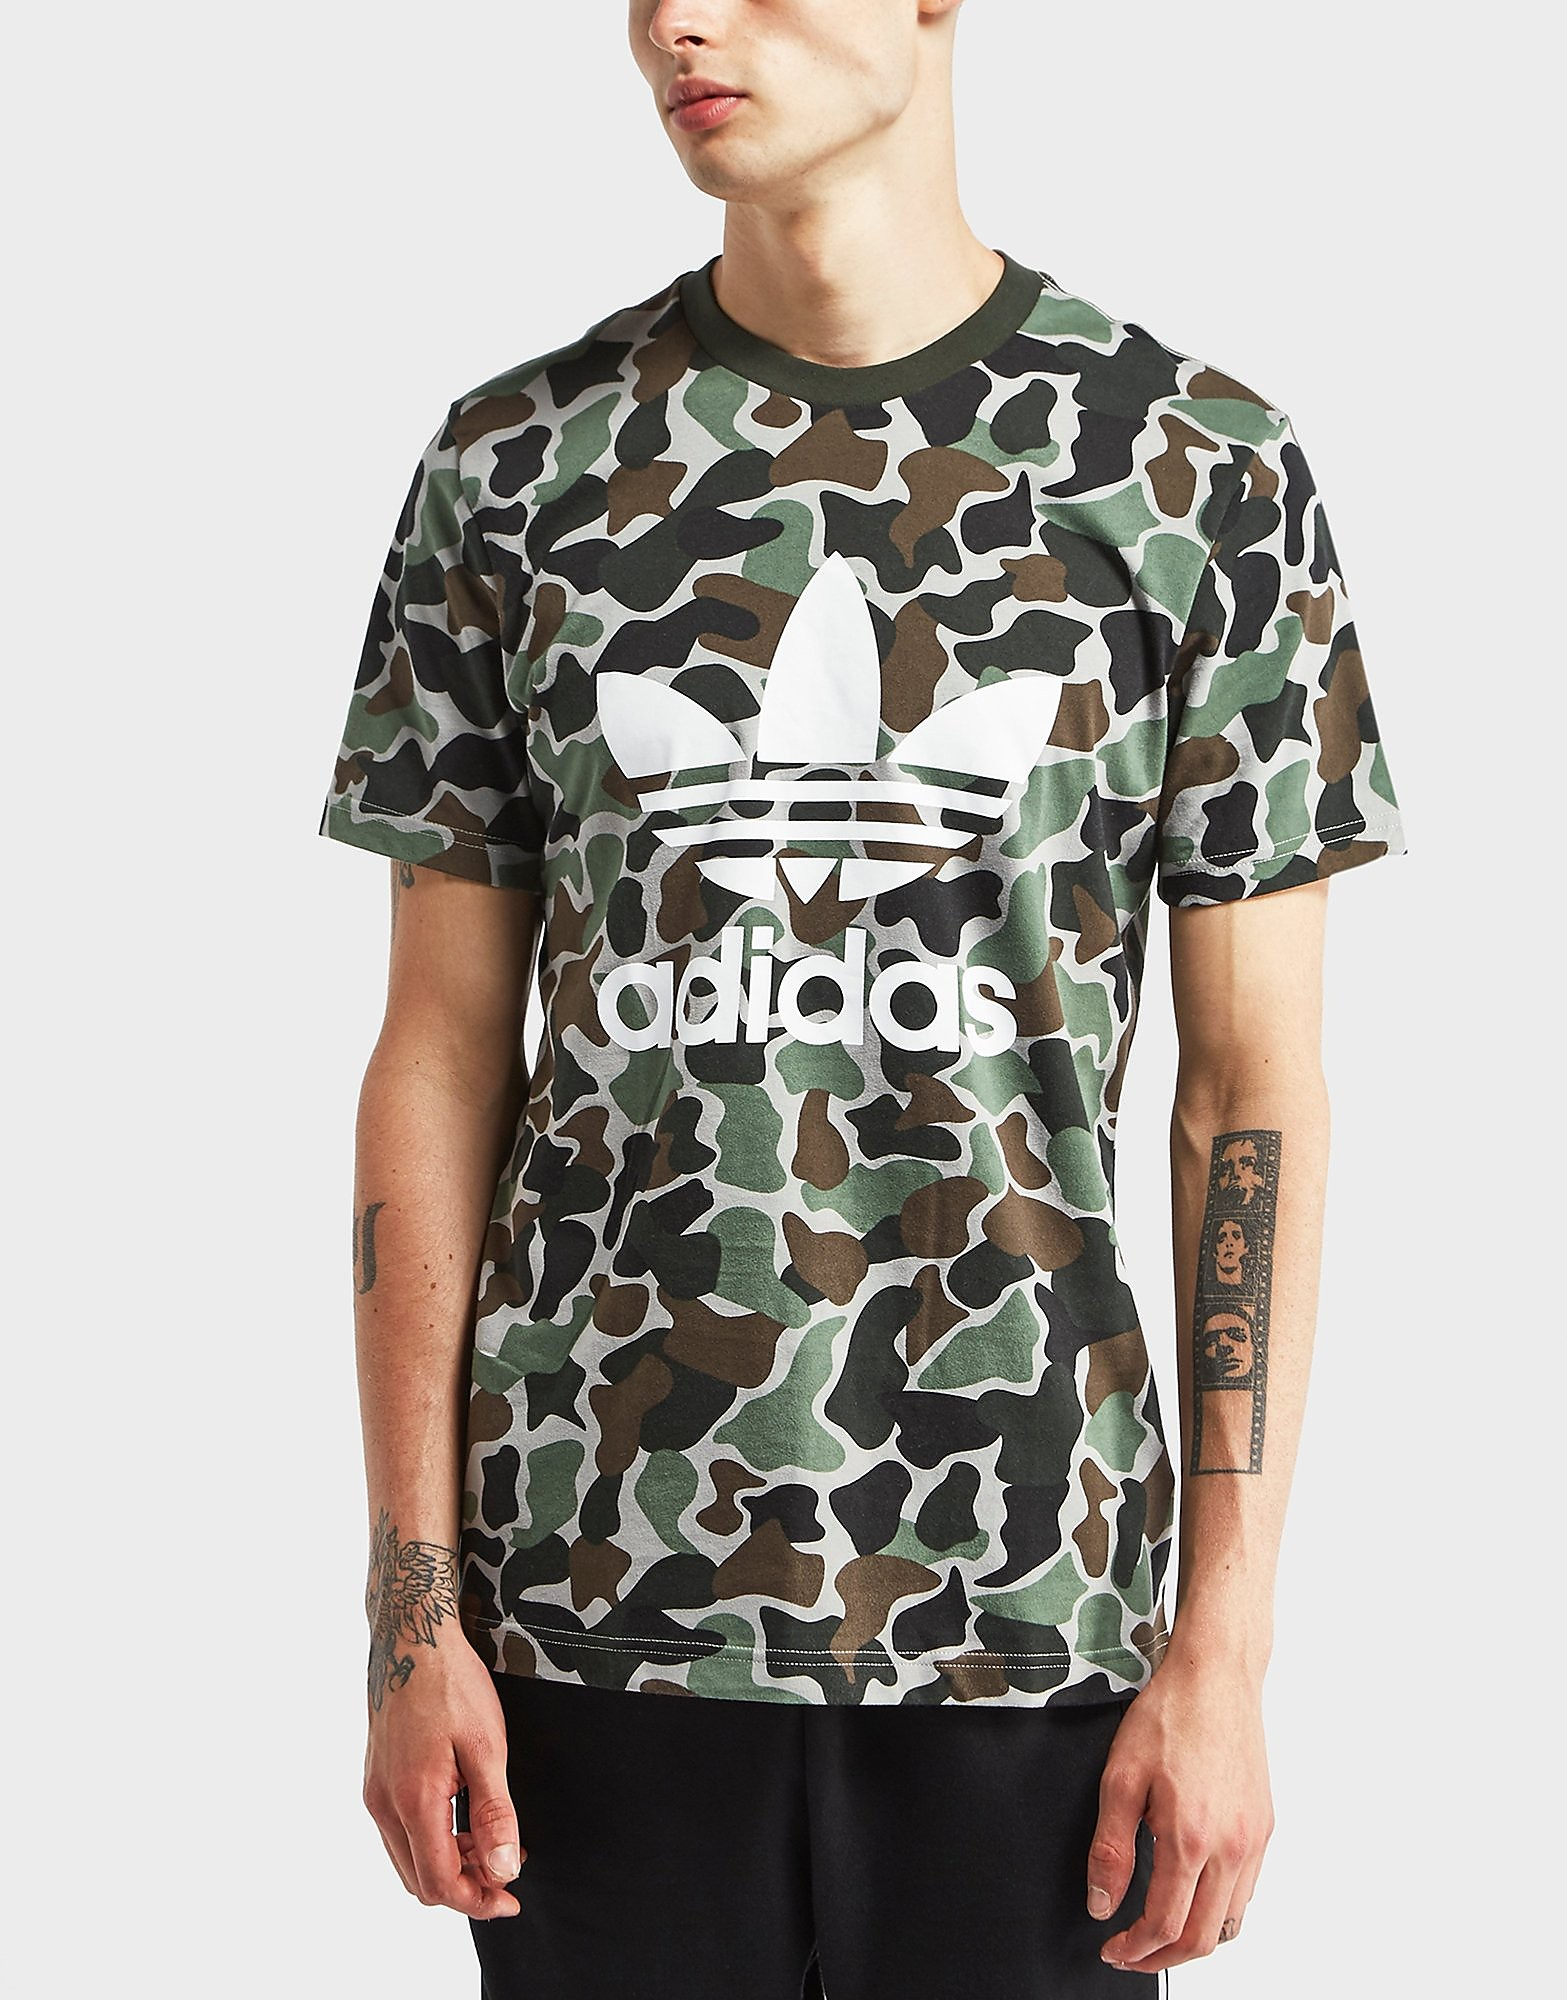 adidas Originals Camouflage Print Short Sleeve T-Shirt